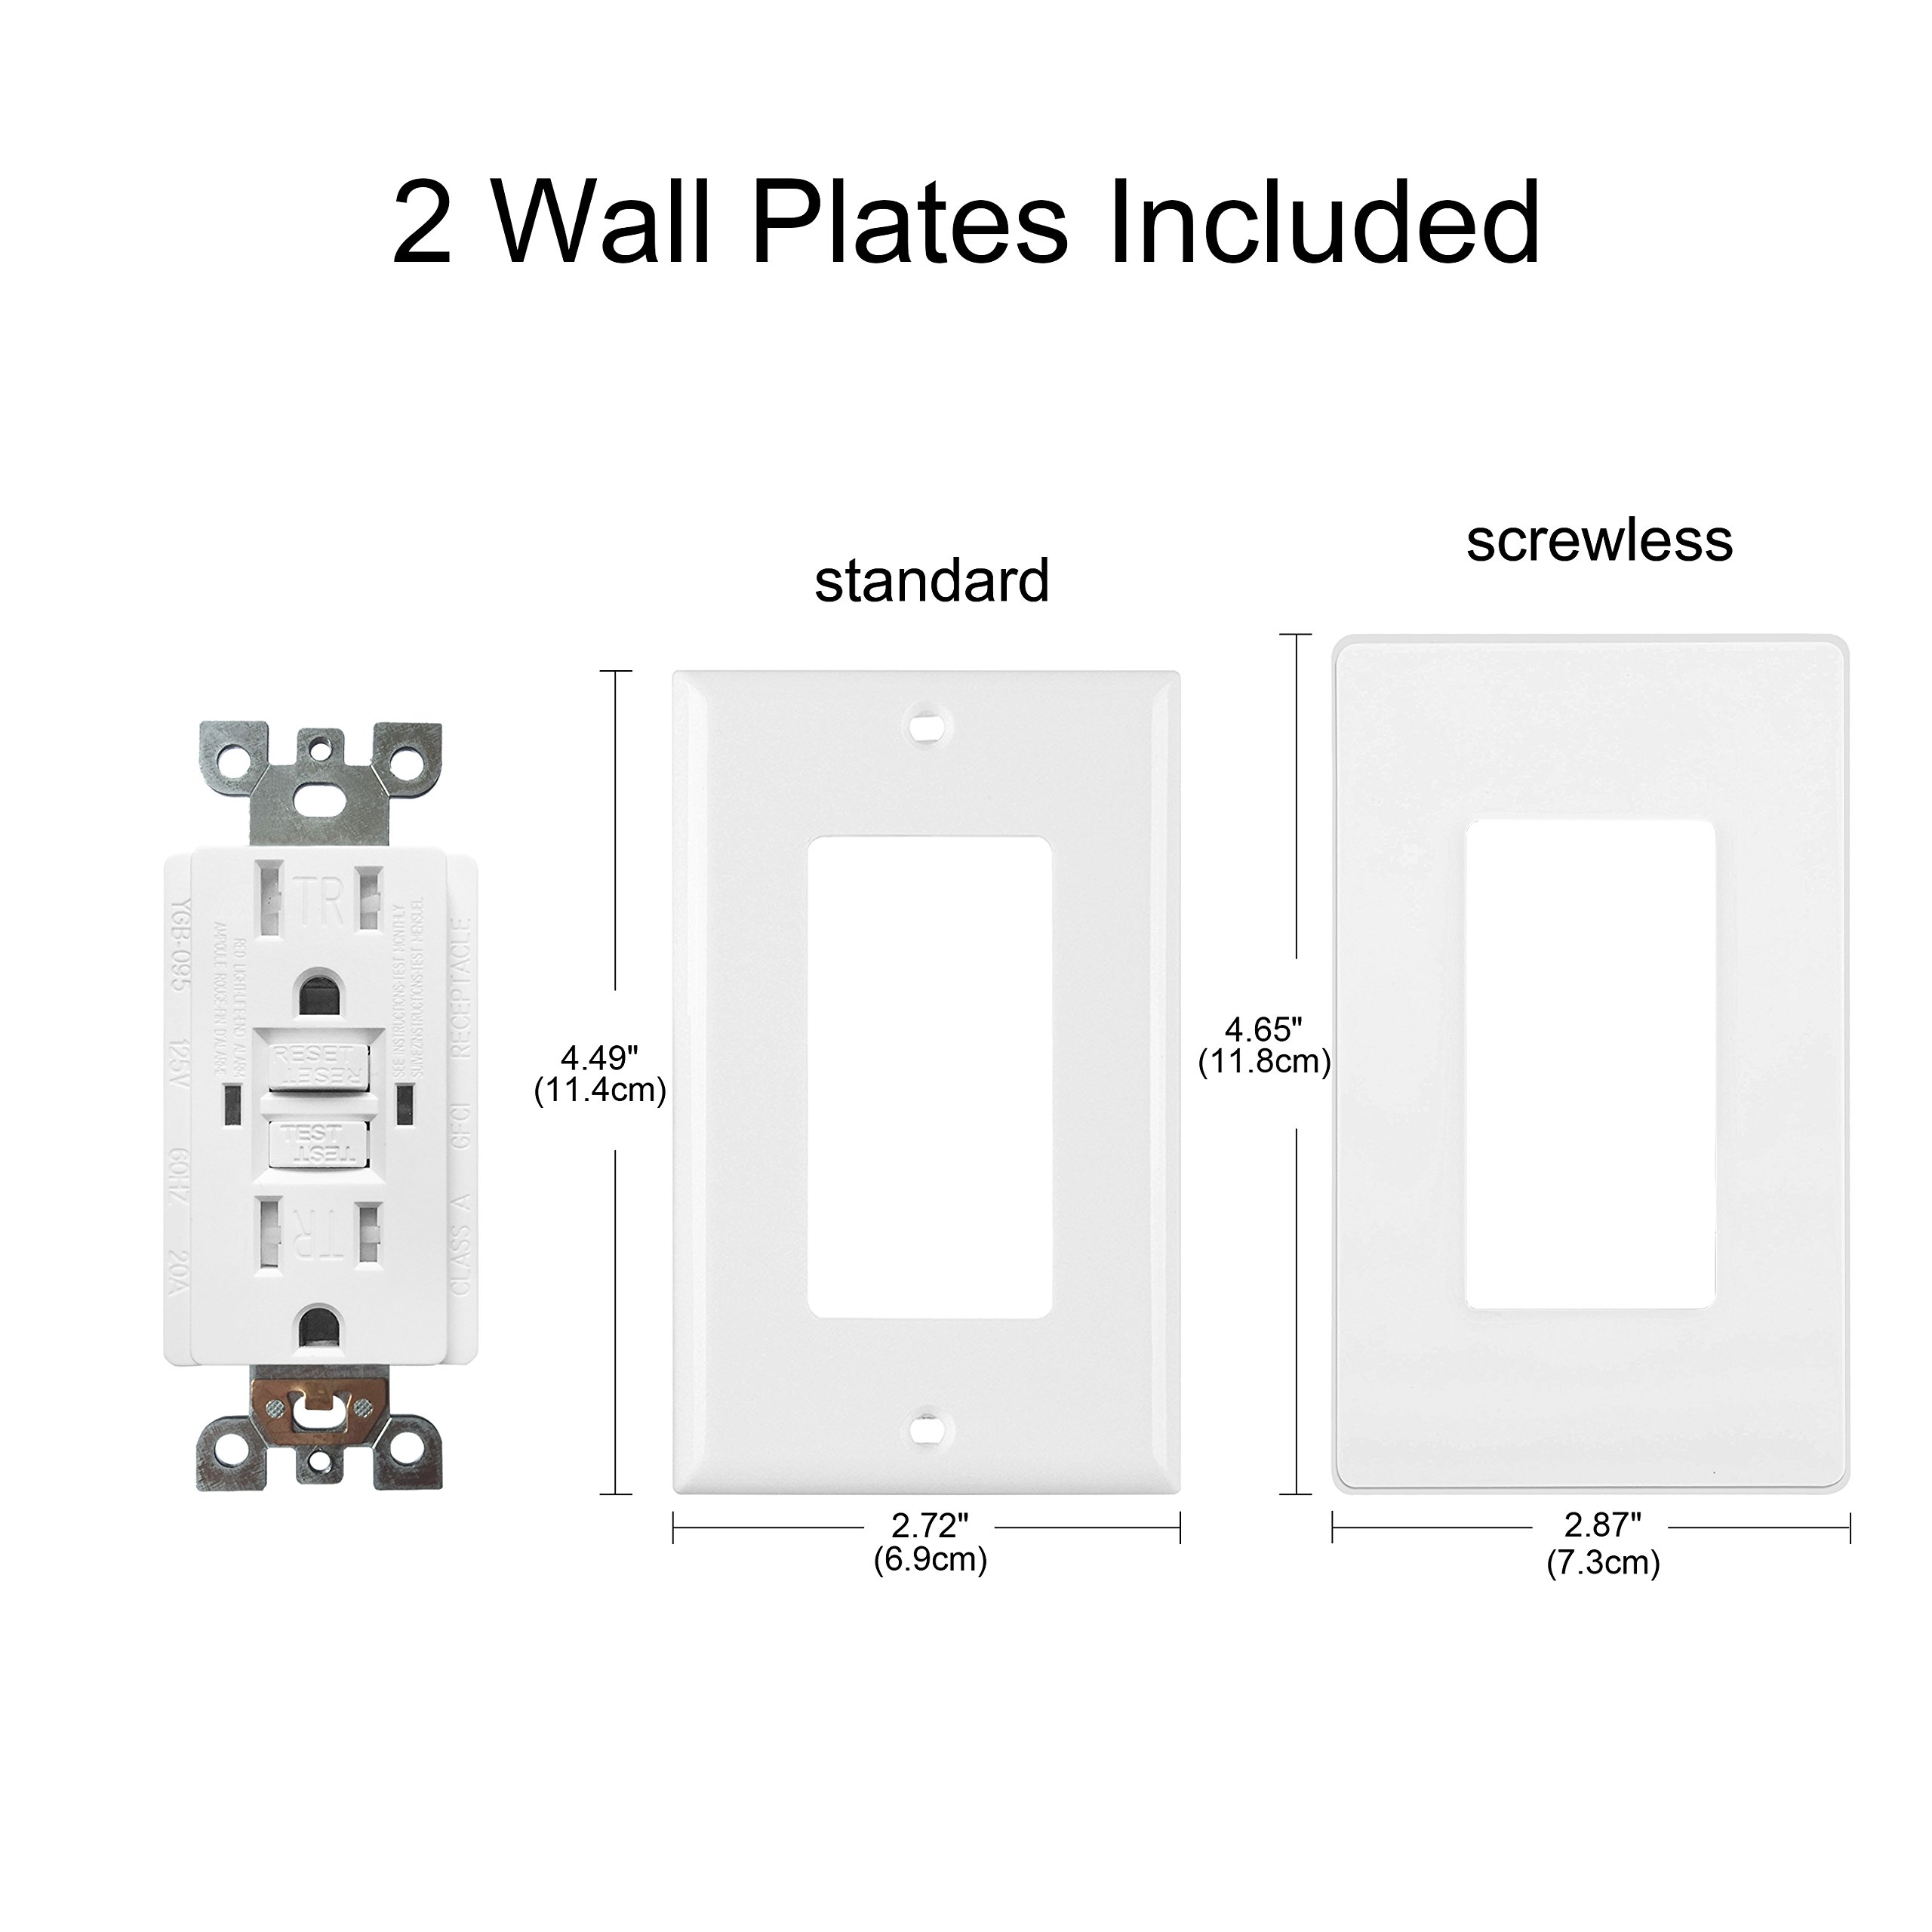 [10 Pack] BESTTEN 15A Dual Indicator Self Test GFCI Receptacle, 15A/125V/1875W, Tamper Resistant Outlet, 2 Wall Plates and Screws Included, Auto-Test Function, UL Certified, White by BESTTEN (Image #4)